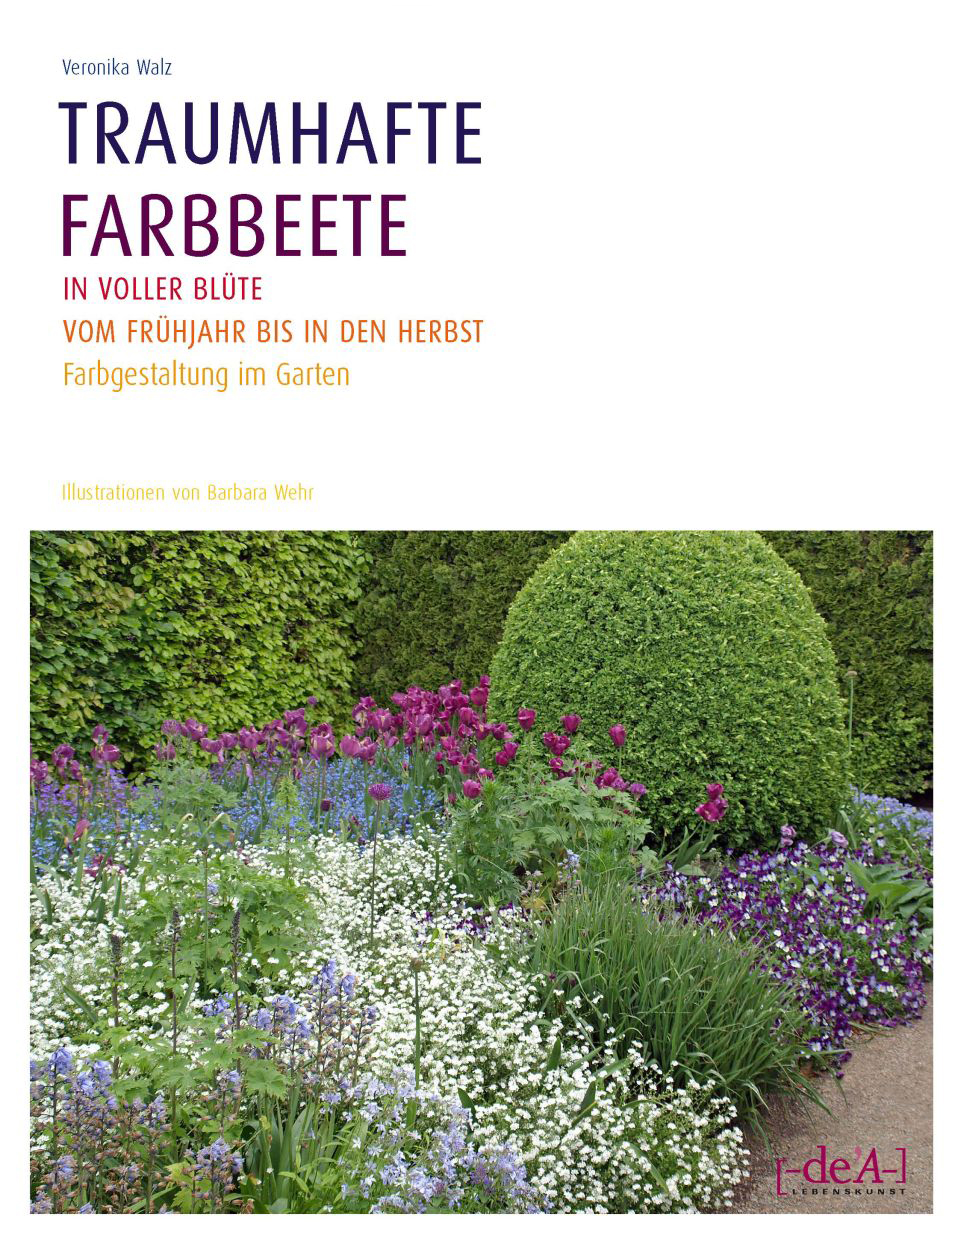 traumhaftefarbbeete-Cover